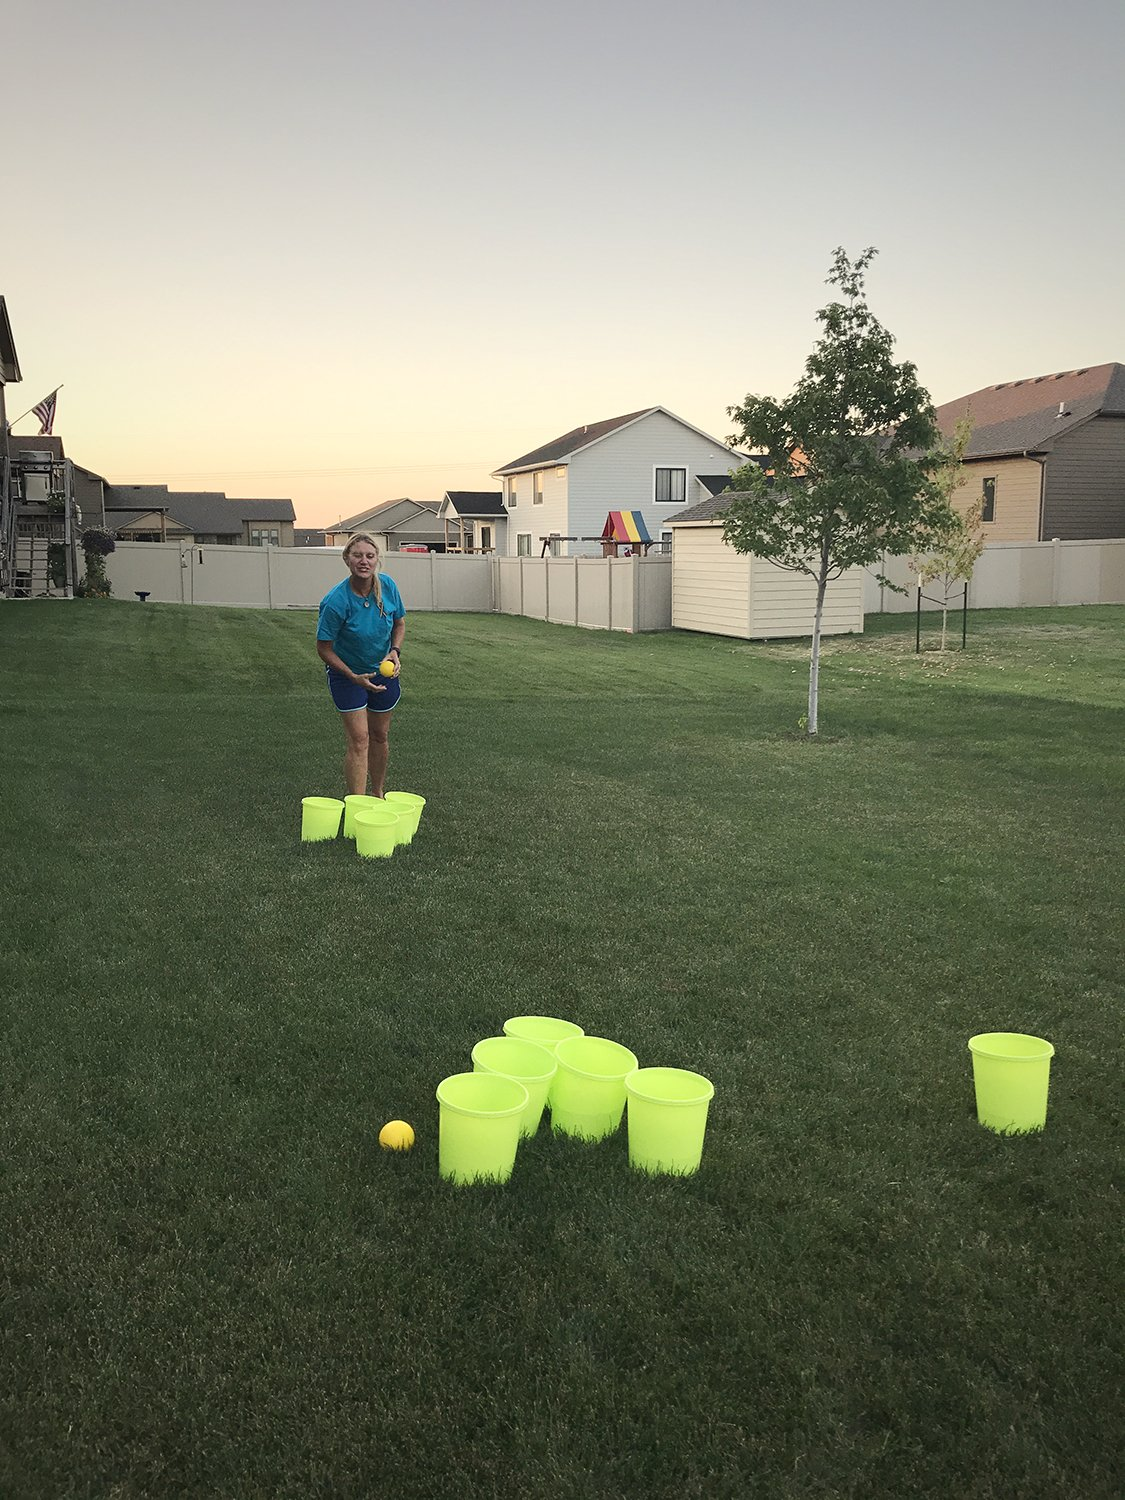 Get Out! Patio Pong – Giant Yard Beer Pong Set for Outdoor Fun – 12 Buckets, 2 Balls, 1 Drawstring Carrying Bag by Get Out! (Image #5)